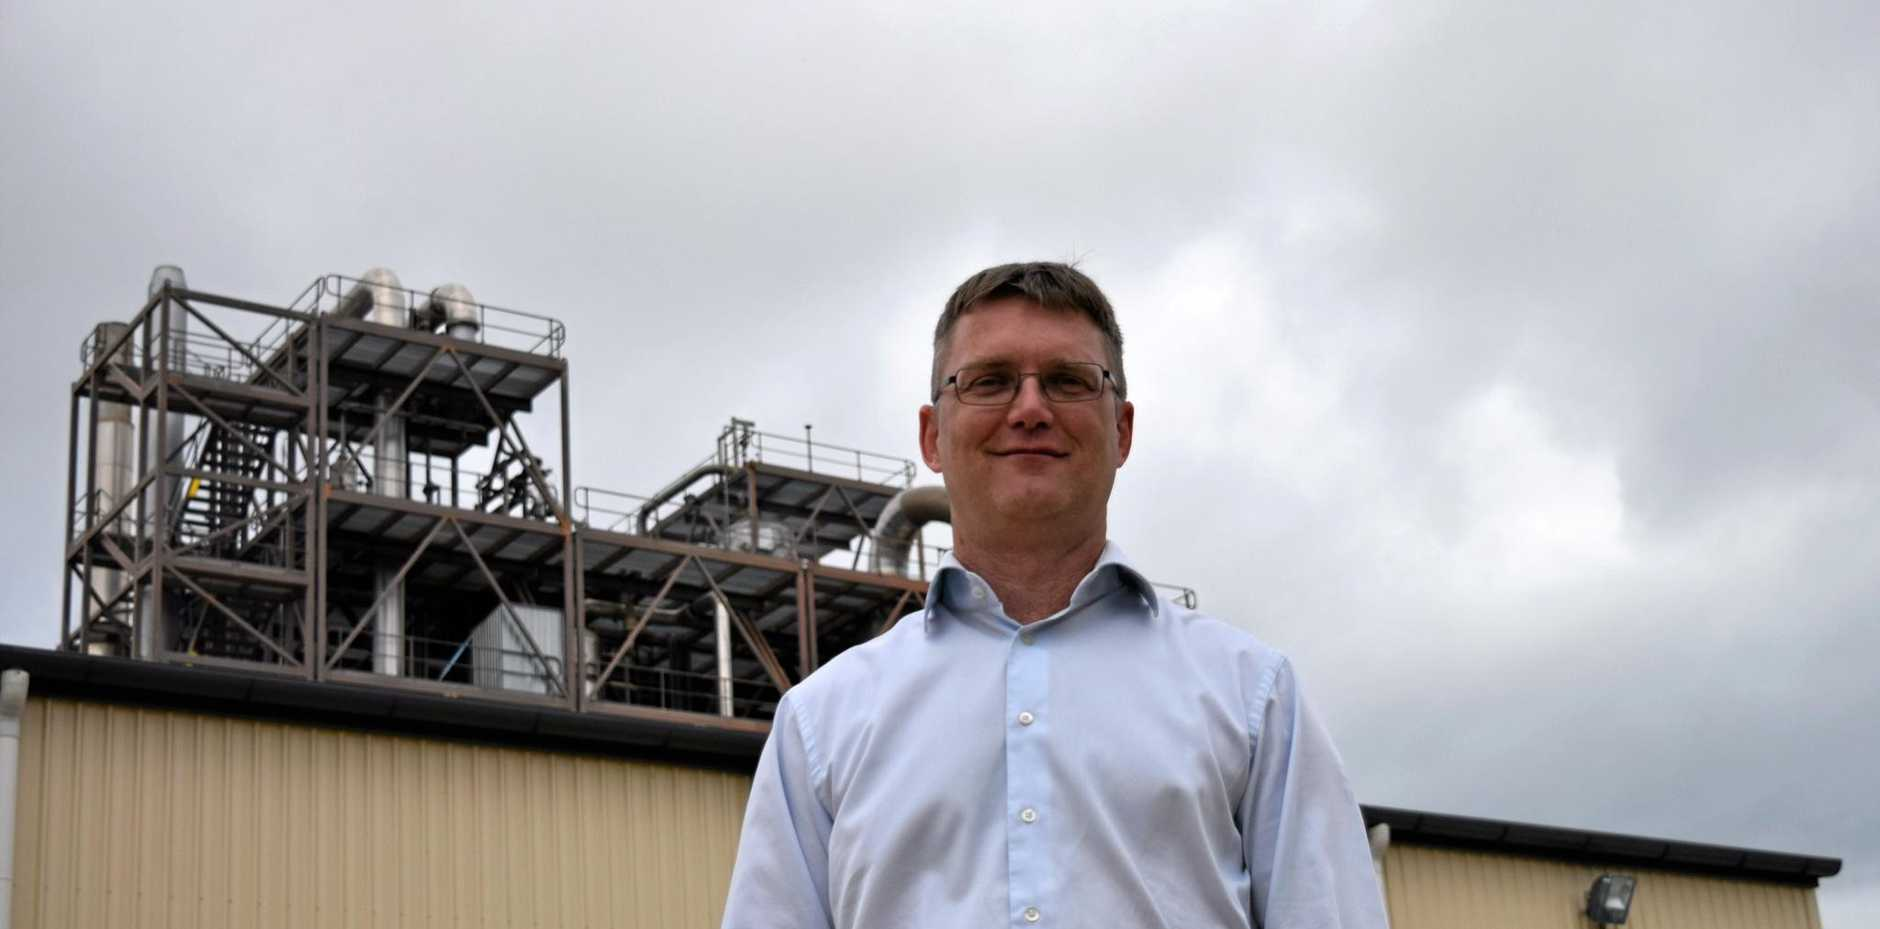 Southern Oil Refinery managing director Tim Rose.